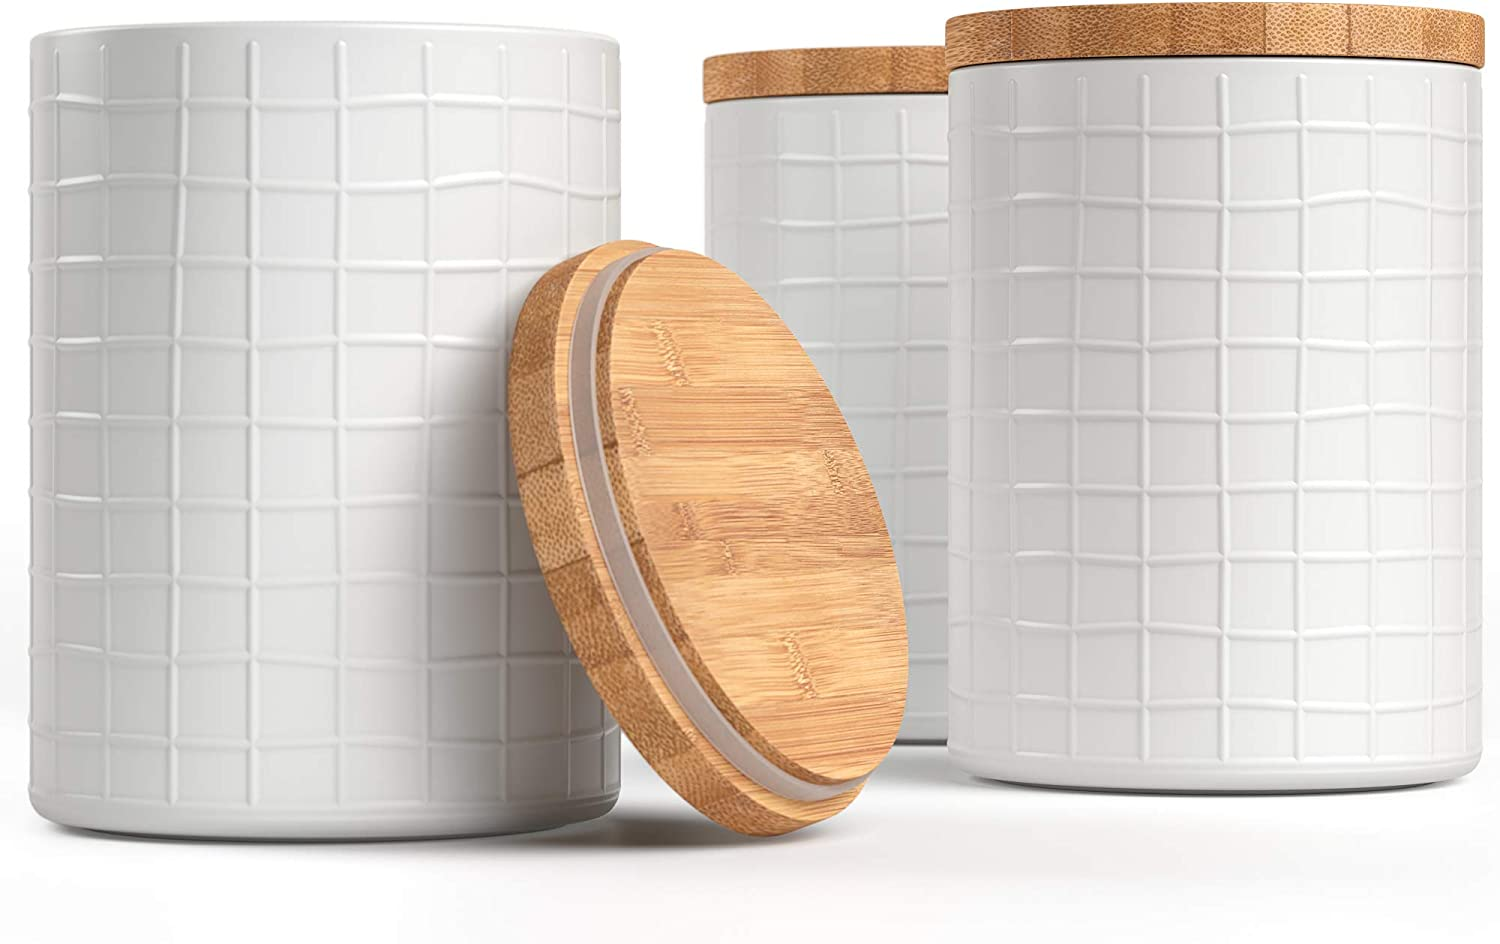 """Barnyard Designs Kitchen Canisters with Bamboo Lids, Airtight Metal Canister Set, Coffee, Sugar, Tea, Flour Storage Containers, Farmhouse Kitchen Decor, White, 5.25"""" x 6.75"""", Set of 3"""